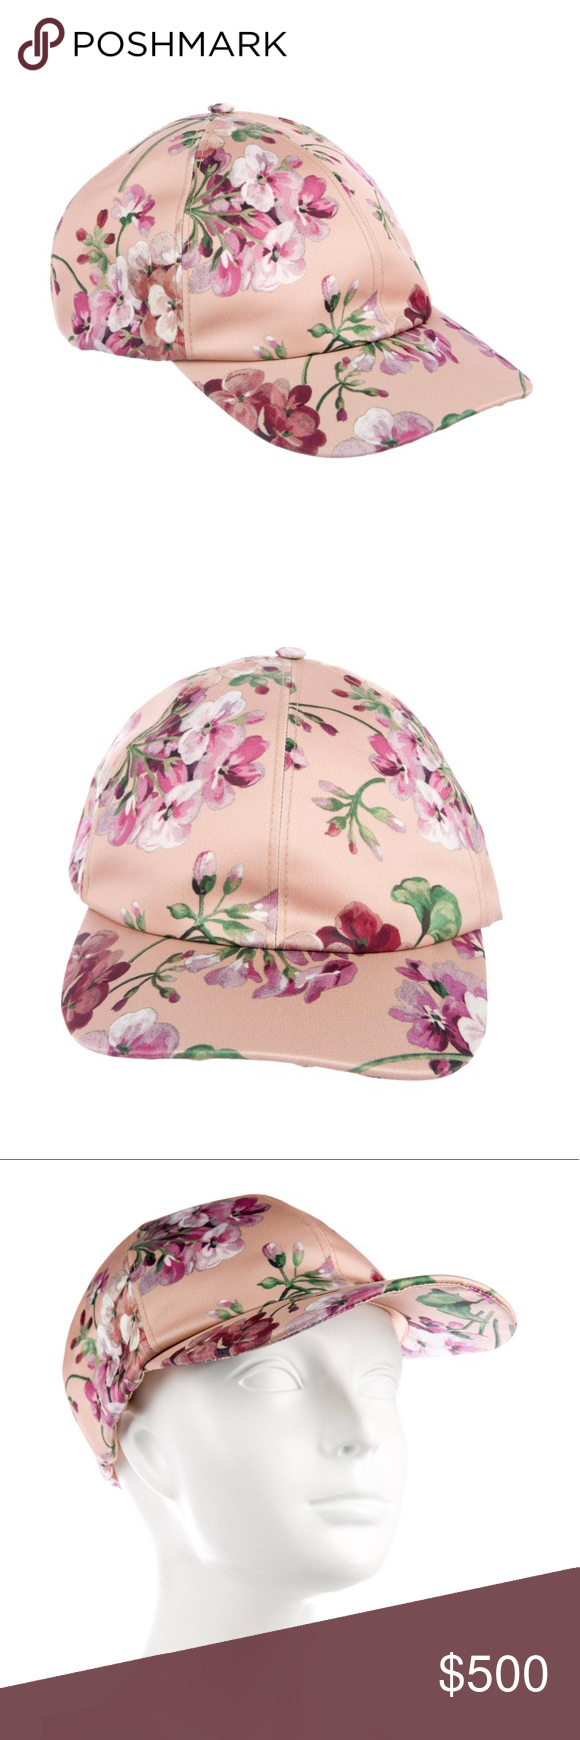 NWT Authentic ⚜️Gucci⚜️ Flora Hat 2018 Blush and